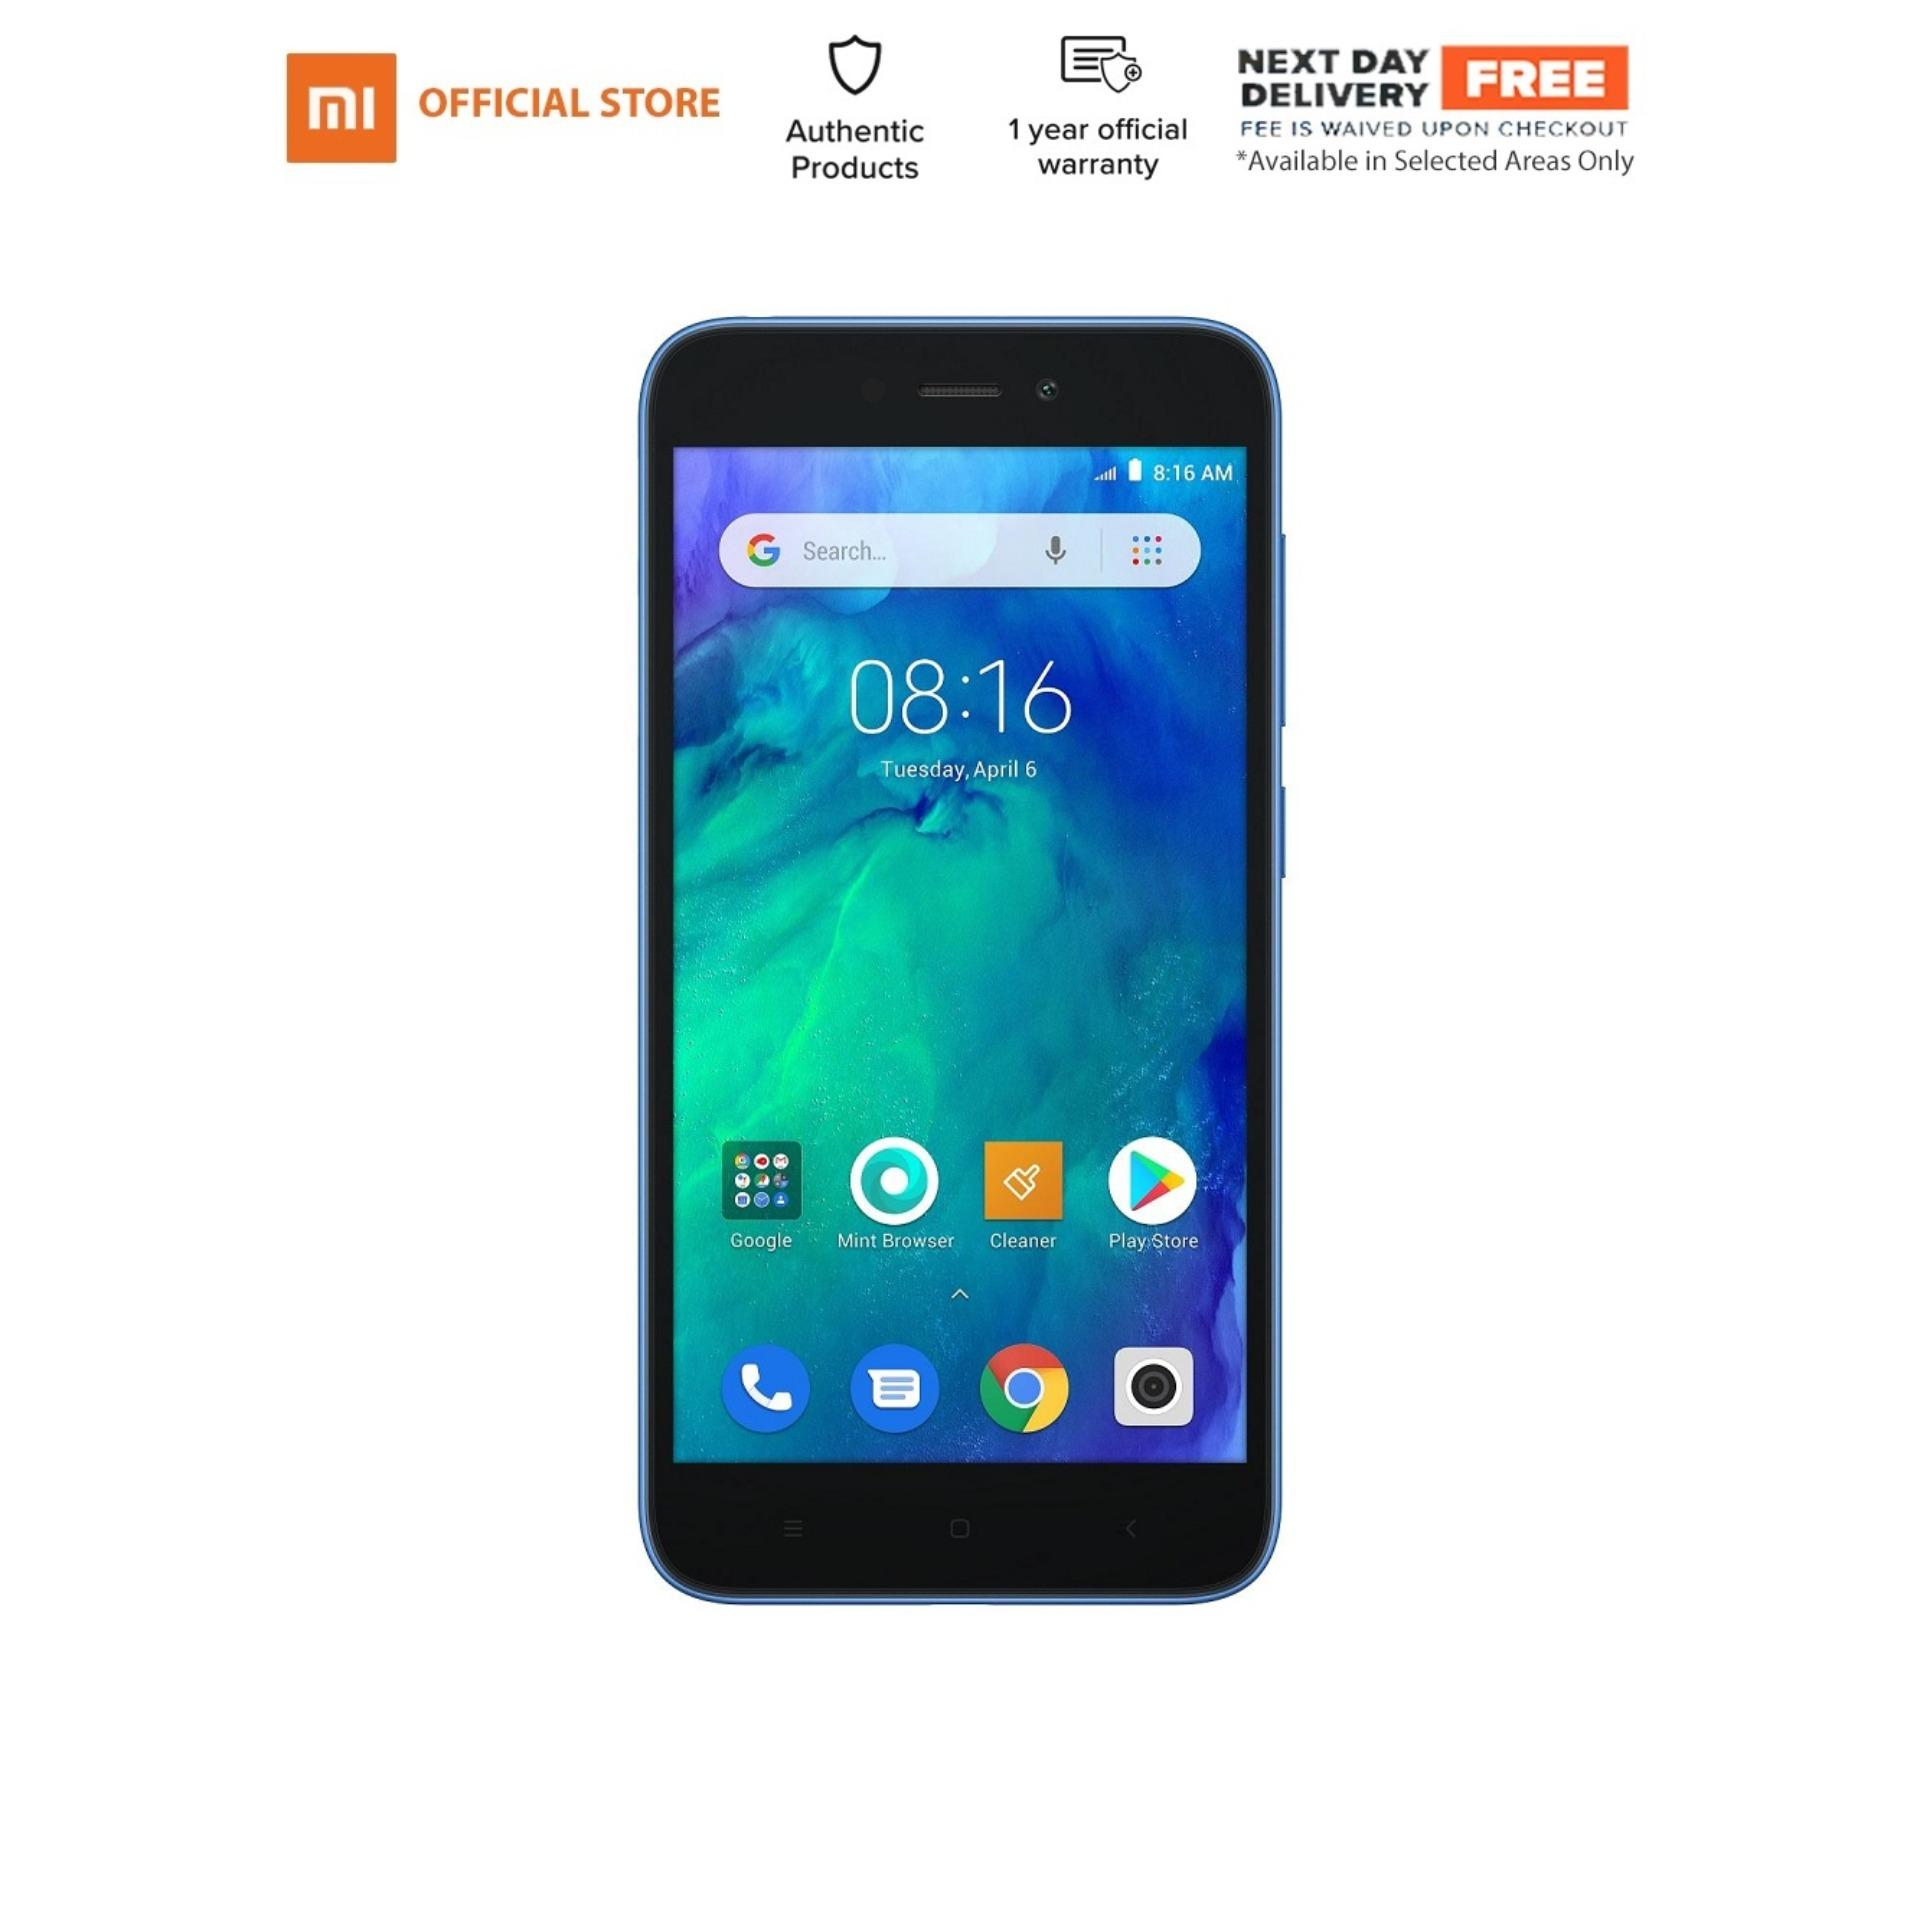 Xiaomi Redmi Go 1gb Ram 8gb Rom (dual Nano Sim + Up To 128gb Expandable Storage) By Lazada Retail Xiaomi.